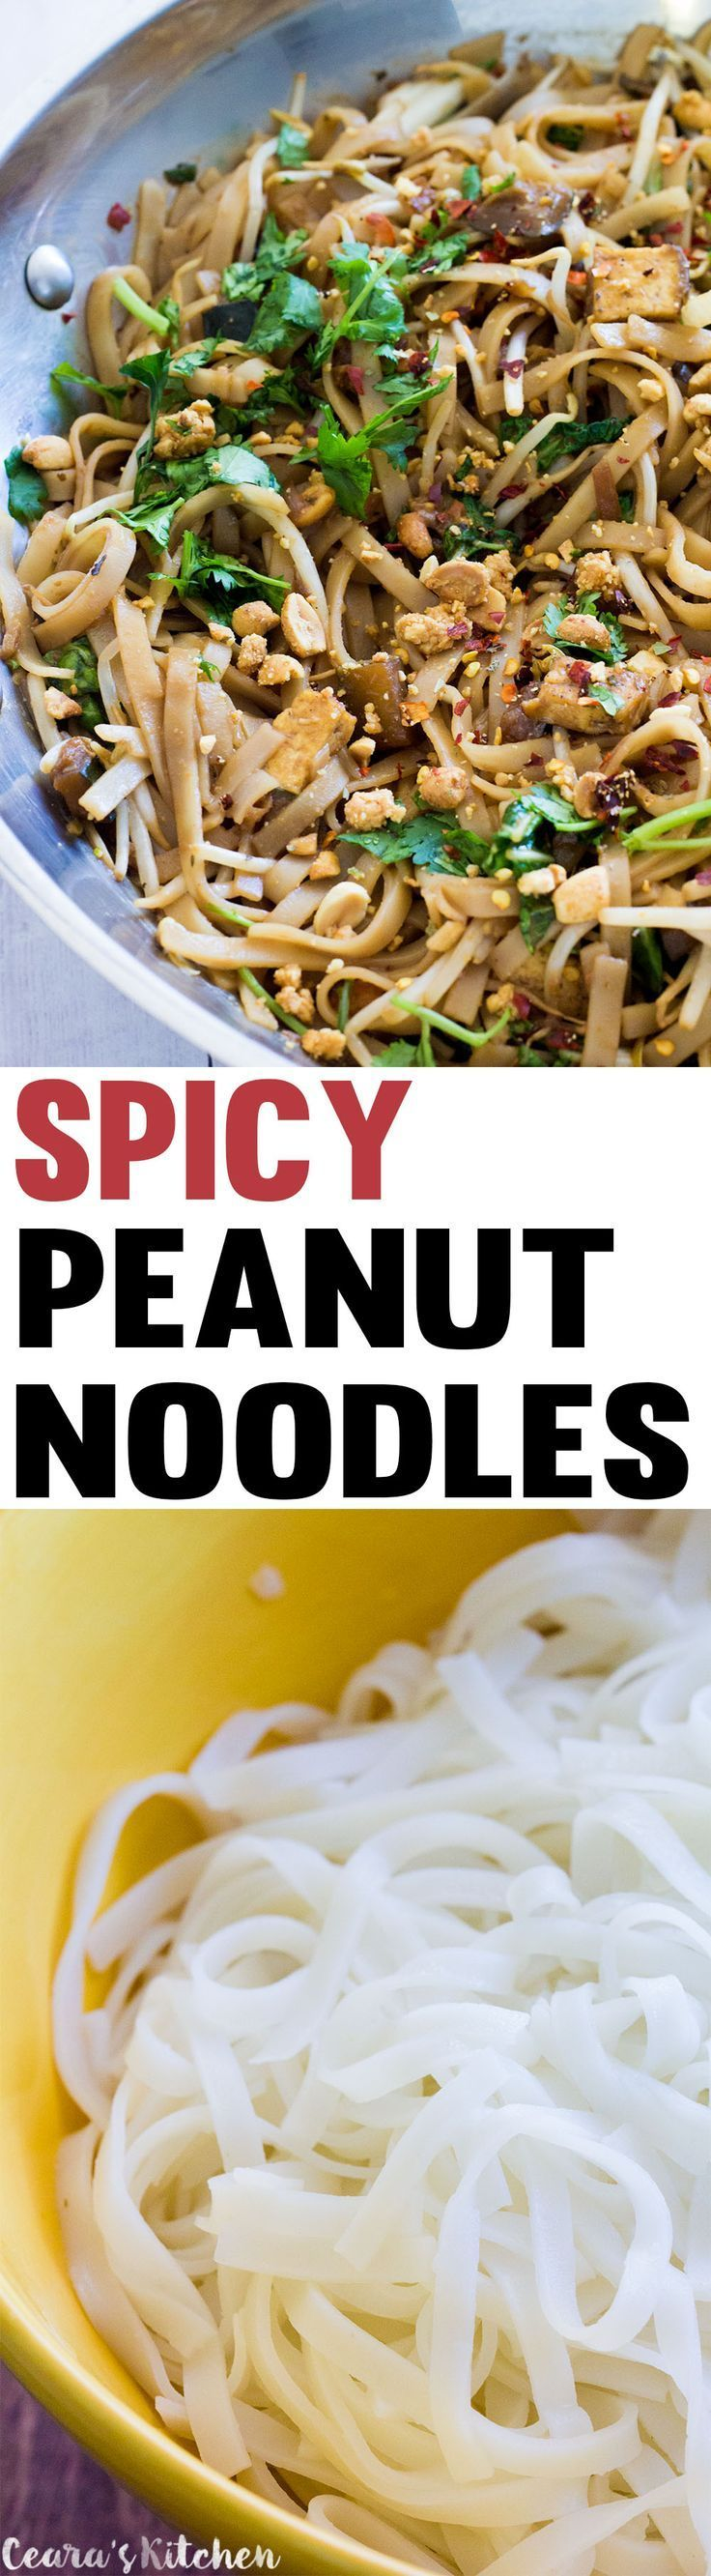 Vegan Spicy Peanut Noodles made with all natural peanut butter, crispy tofu and bok choy! This is a simple meal with a lot of flavour, awesome textures and a real kick. #vegan #glutenfree #meatlessmonday